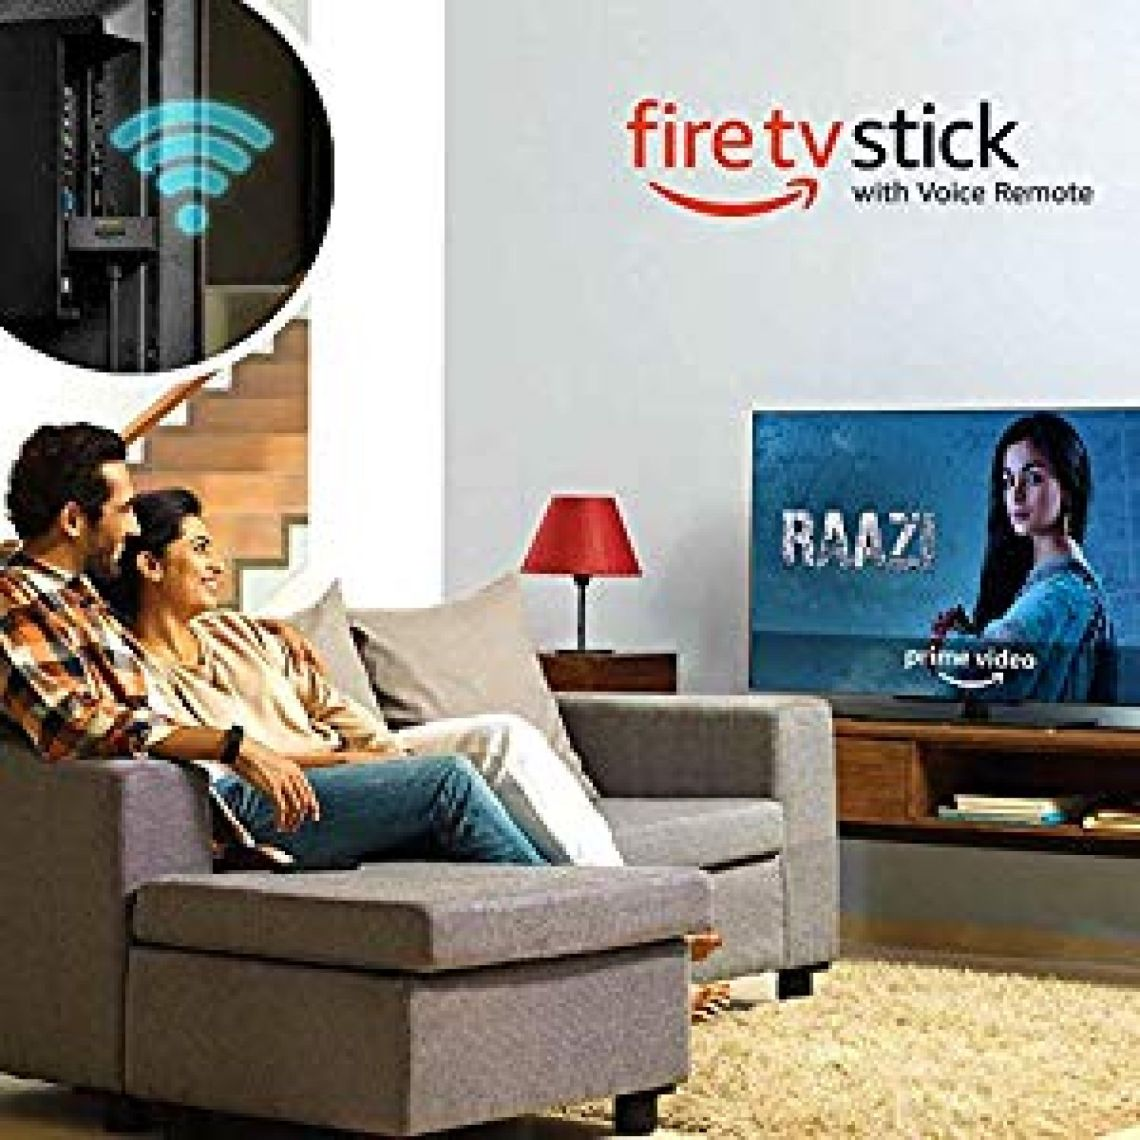 Amazon Fire TV Stick Price: Buy Amazon Fire TV Stick with Voice Remote & Streaming Media Player Online at Best Price in India- Amazon.in